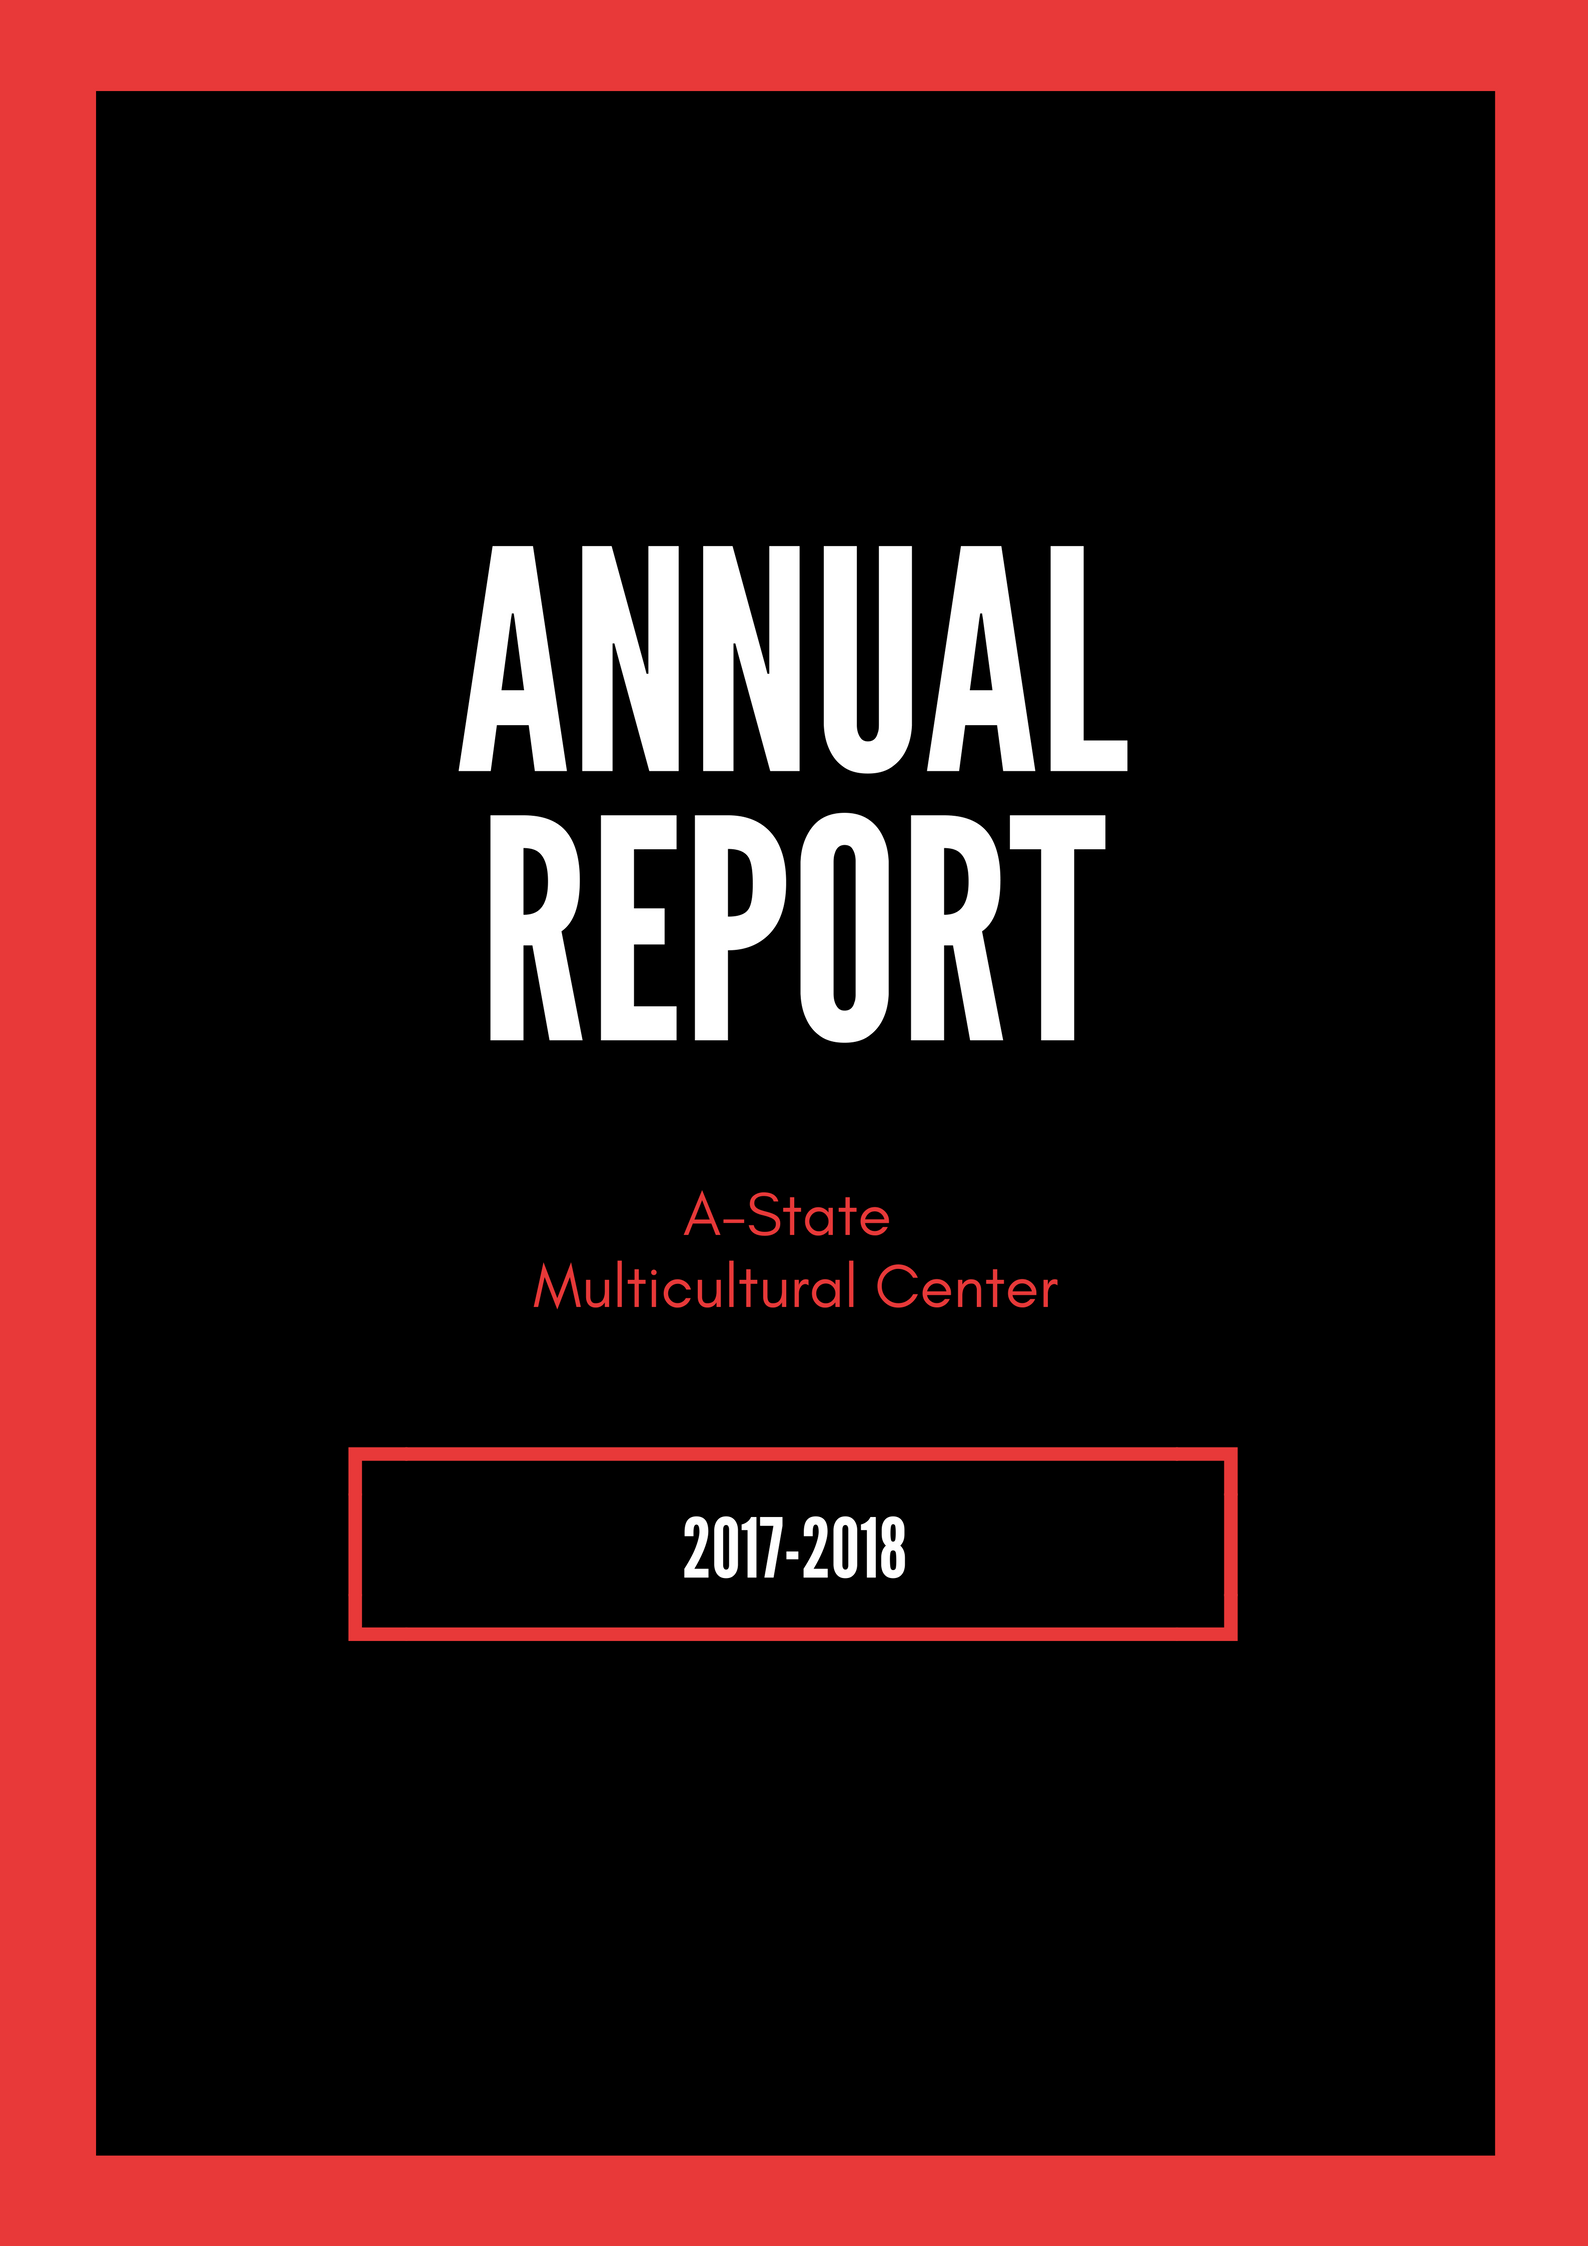 Header photo for 2017-2018 annual Report